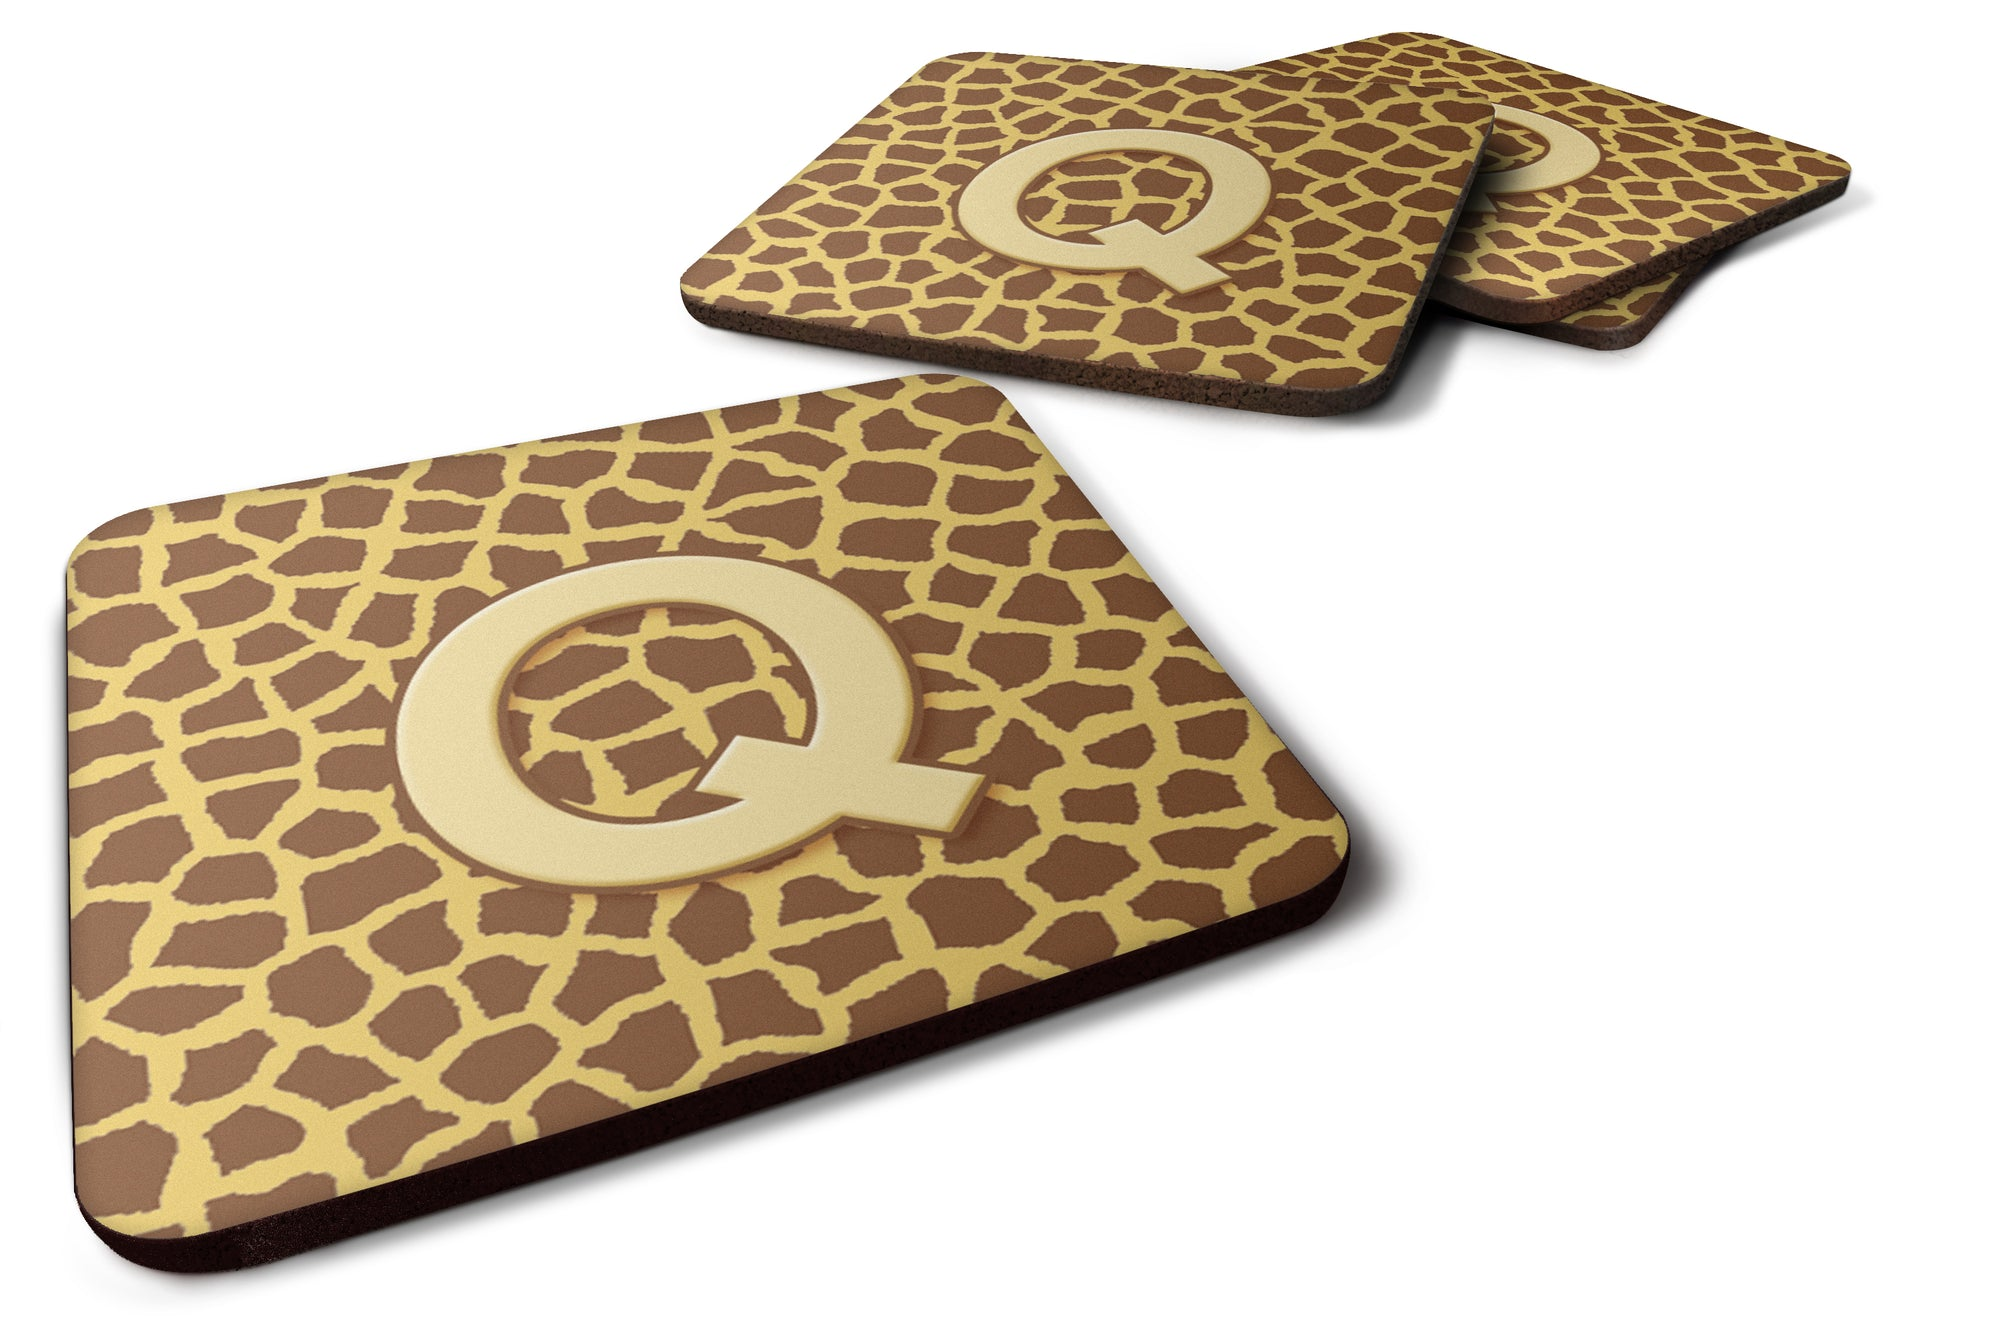 Set of 4 Monogram - Giraffe Foam Coasters Initial Letter Q by Caroline's Treasures